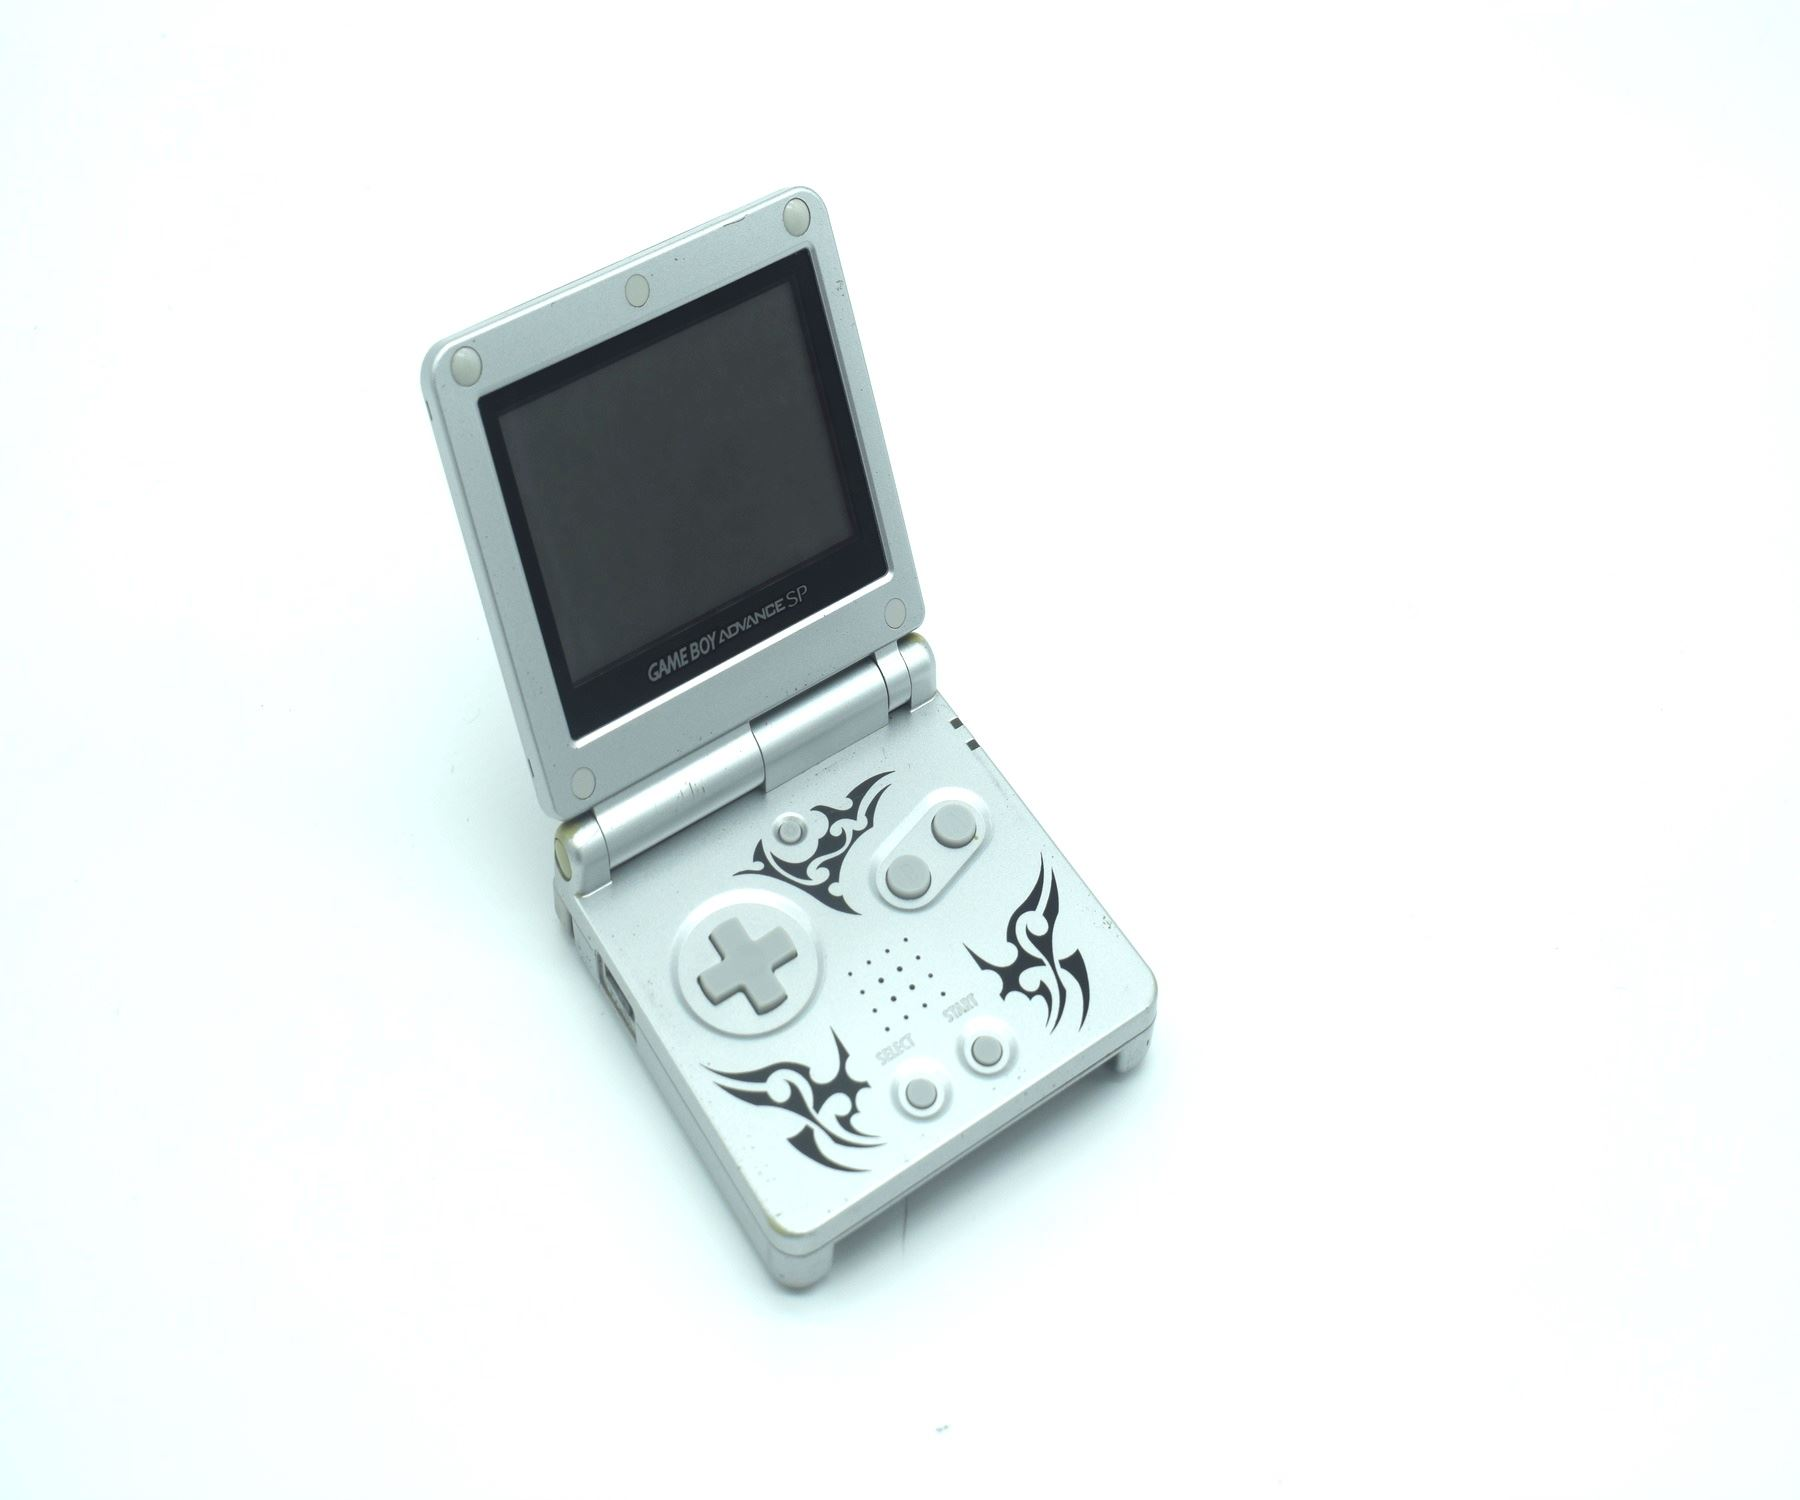 Nintendo-Gameboy-SP-Game-Boy-Advance-GBA-Console-System-6-Colour-Options thumbnail 50